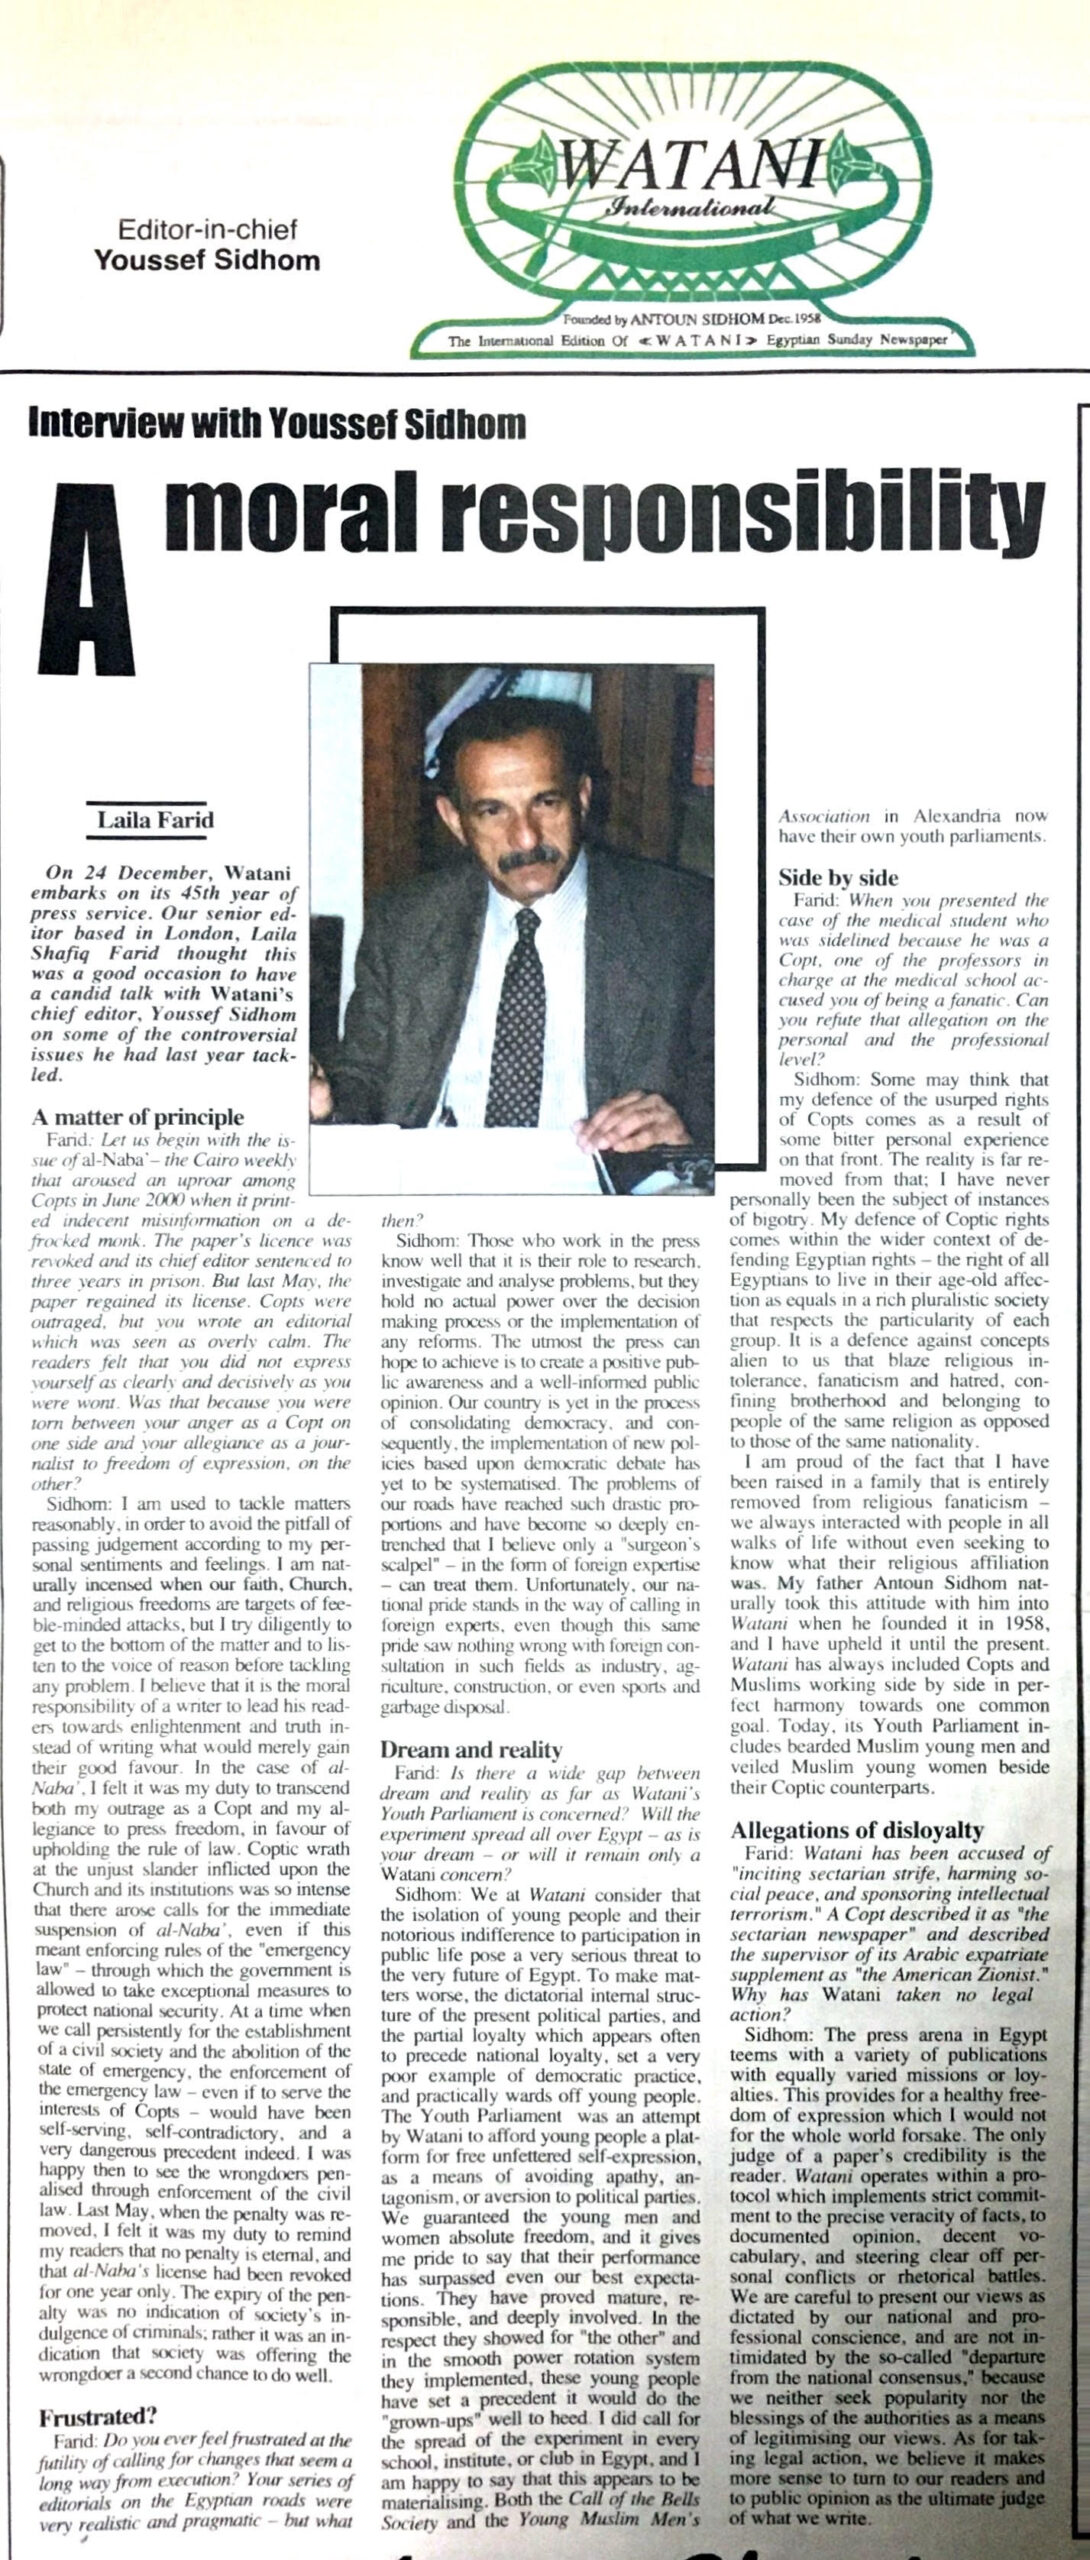 Watani International 2001 and 2002: History in real time